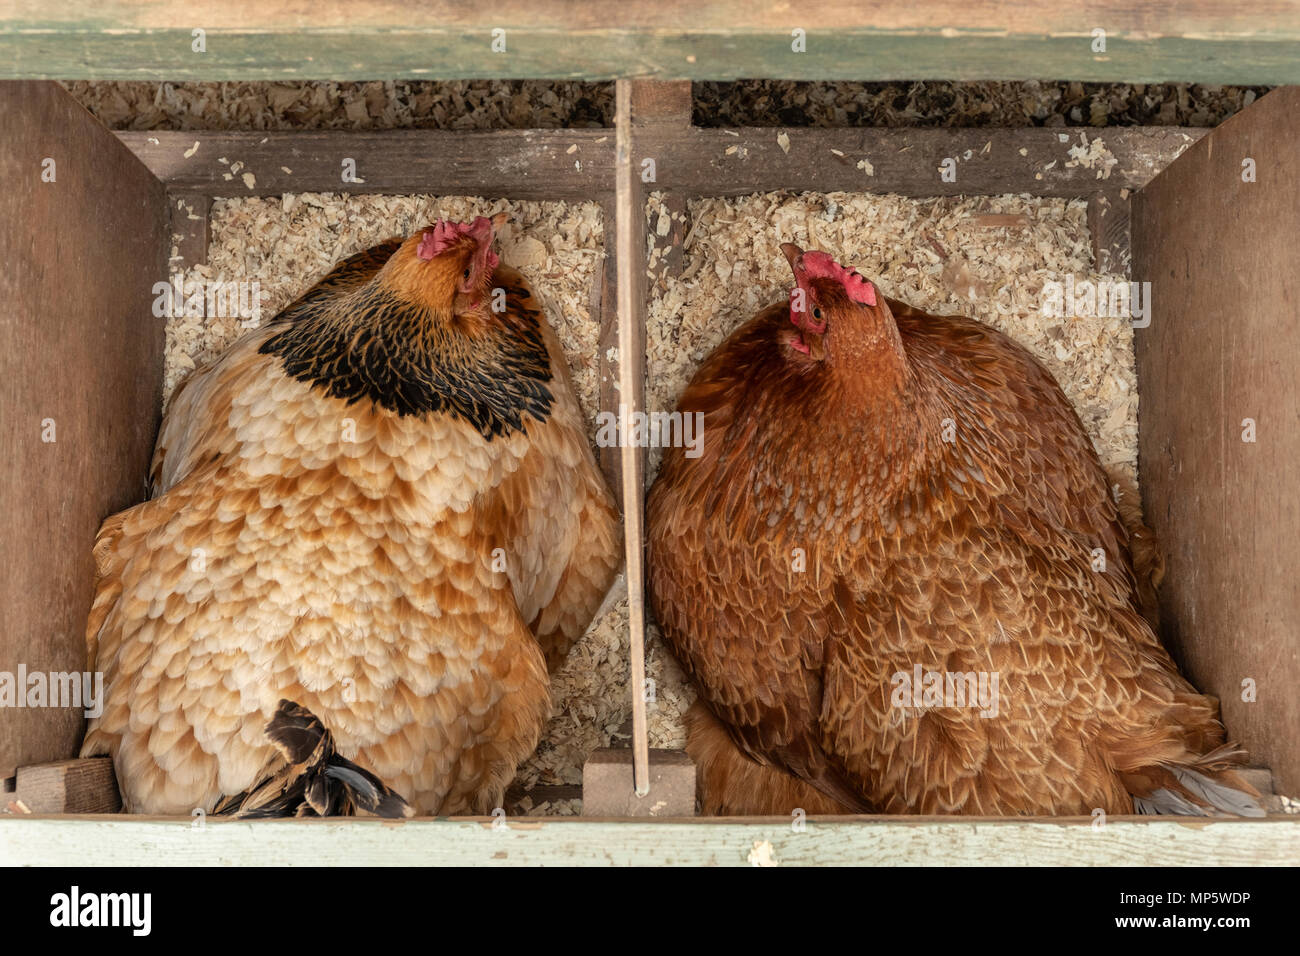 Two brown free range hens sitting on eggs. - Stock Image